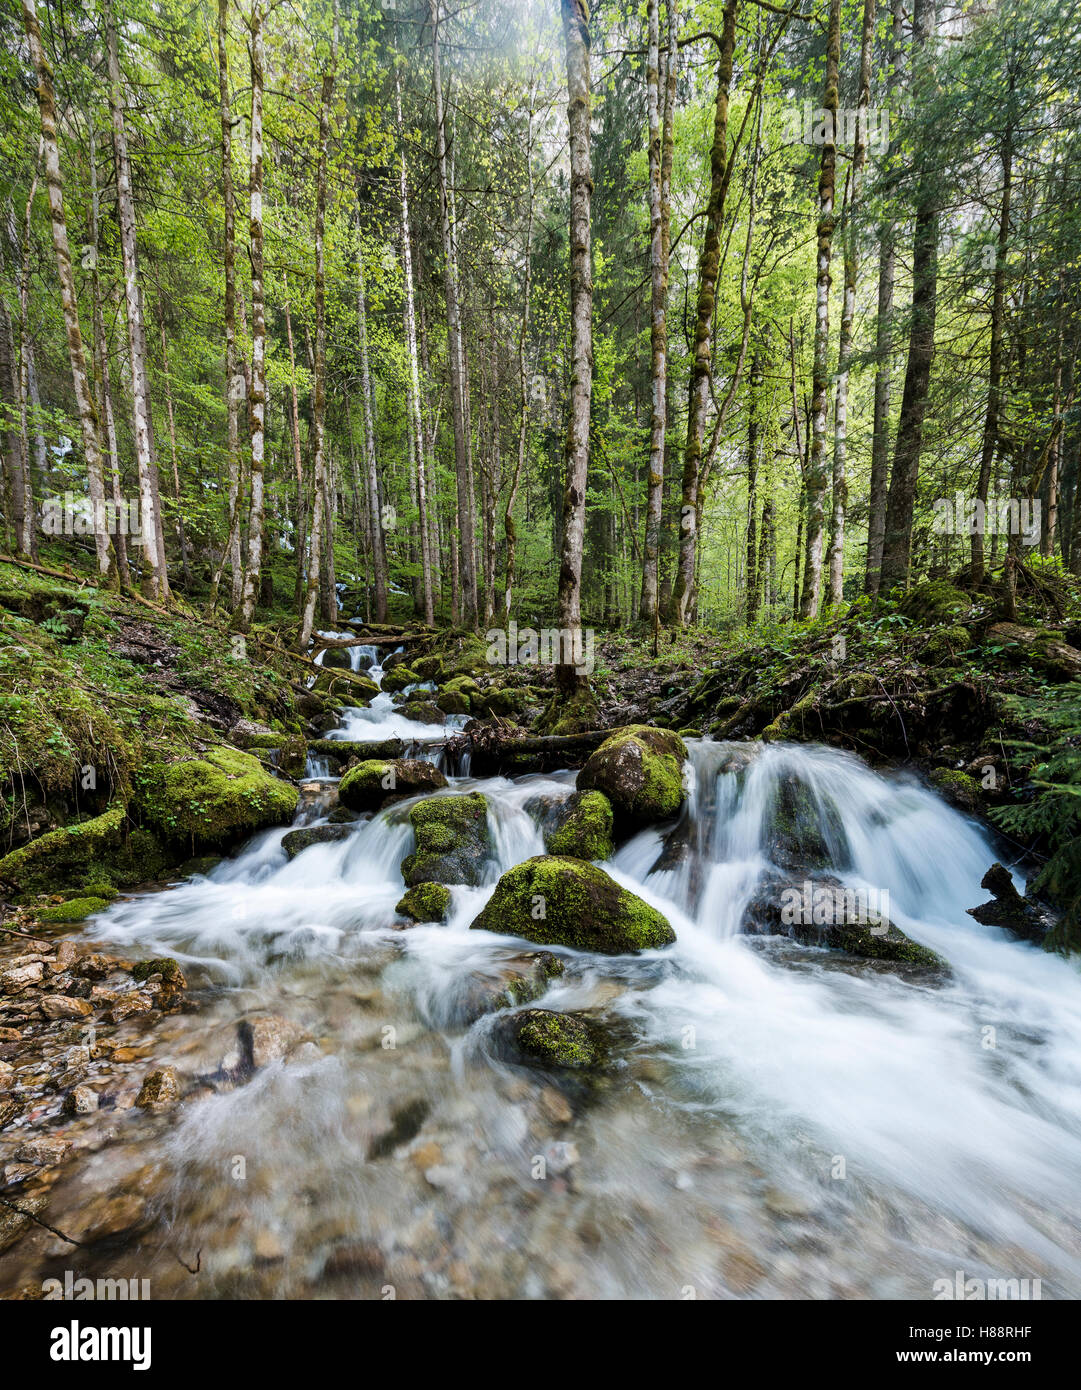 Stream running through forest, Röthbach, Röthbachfall, Schönau am Koenigssee, Berchtesgaden, Bavaria, - Stock Image